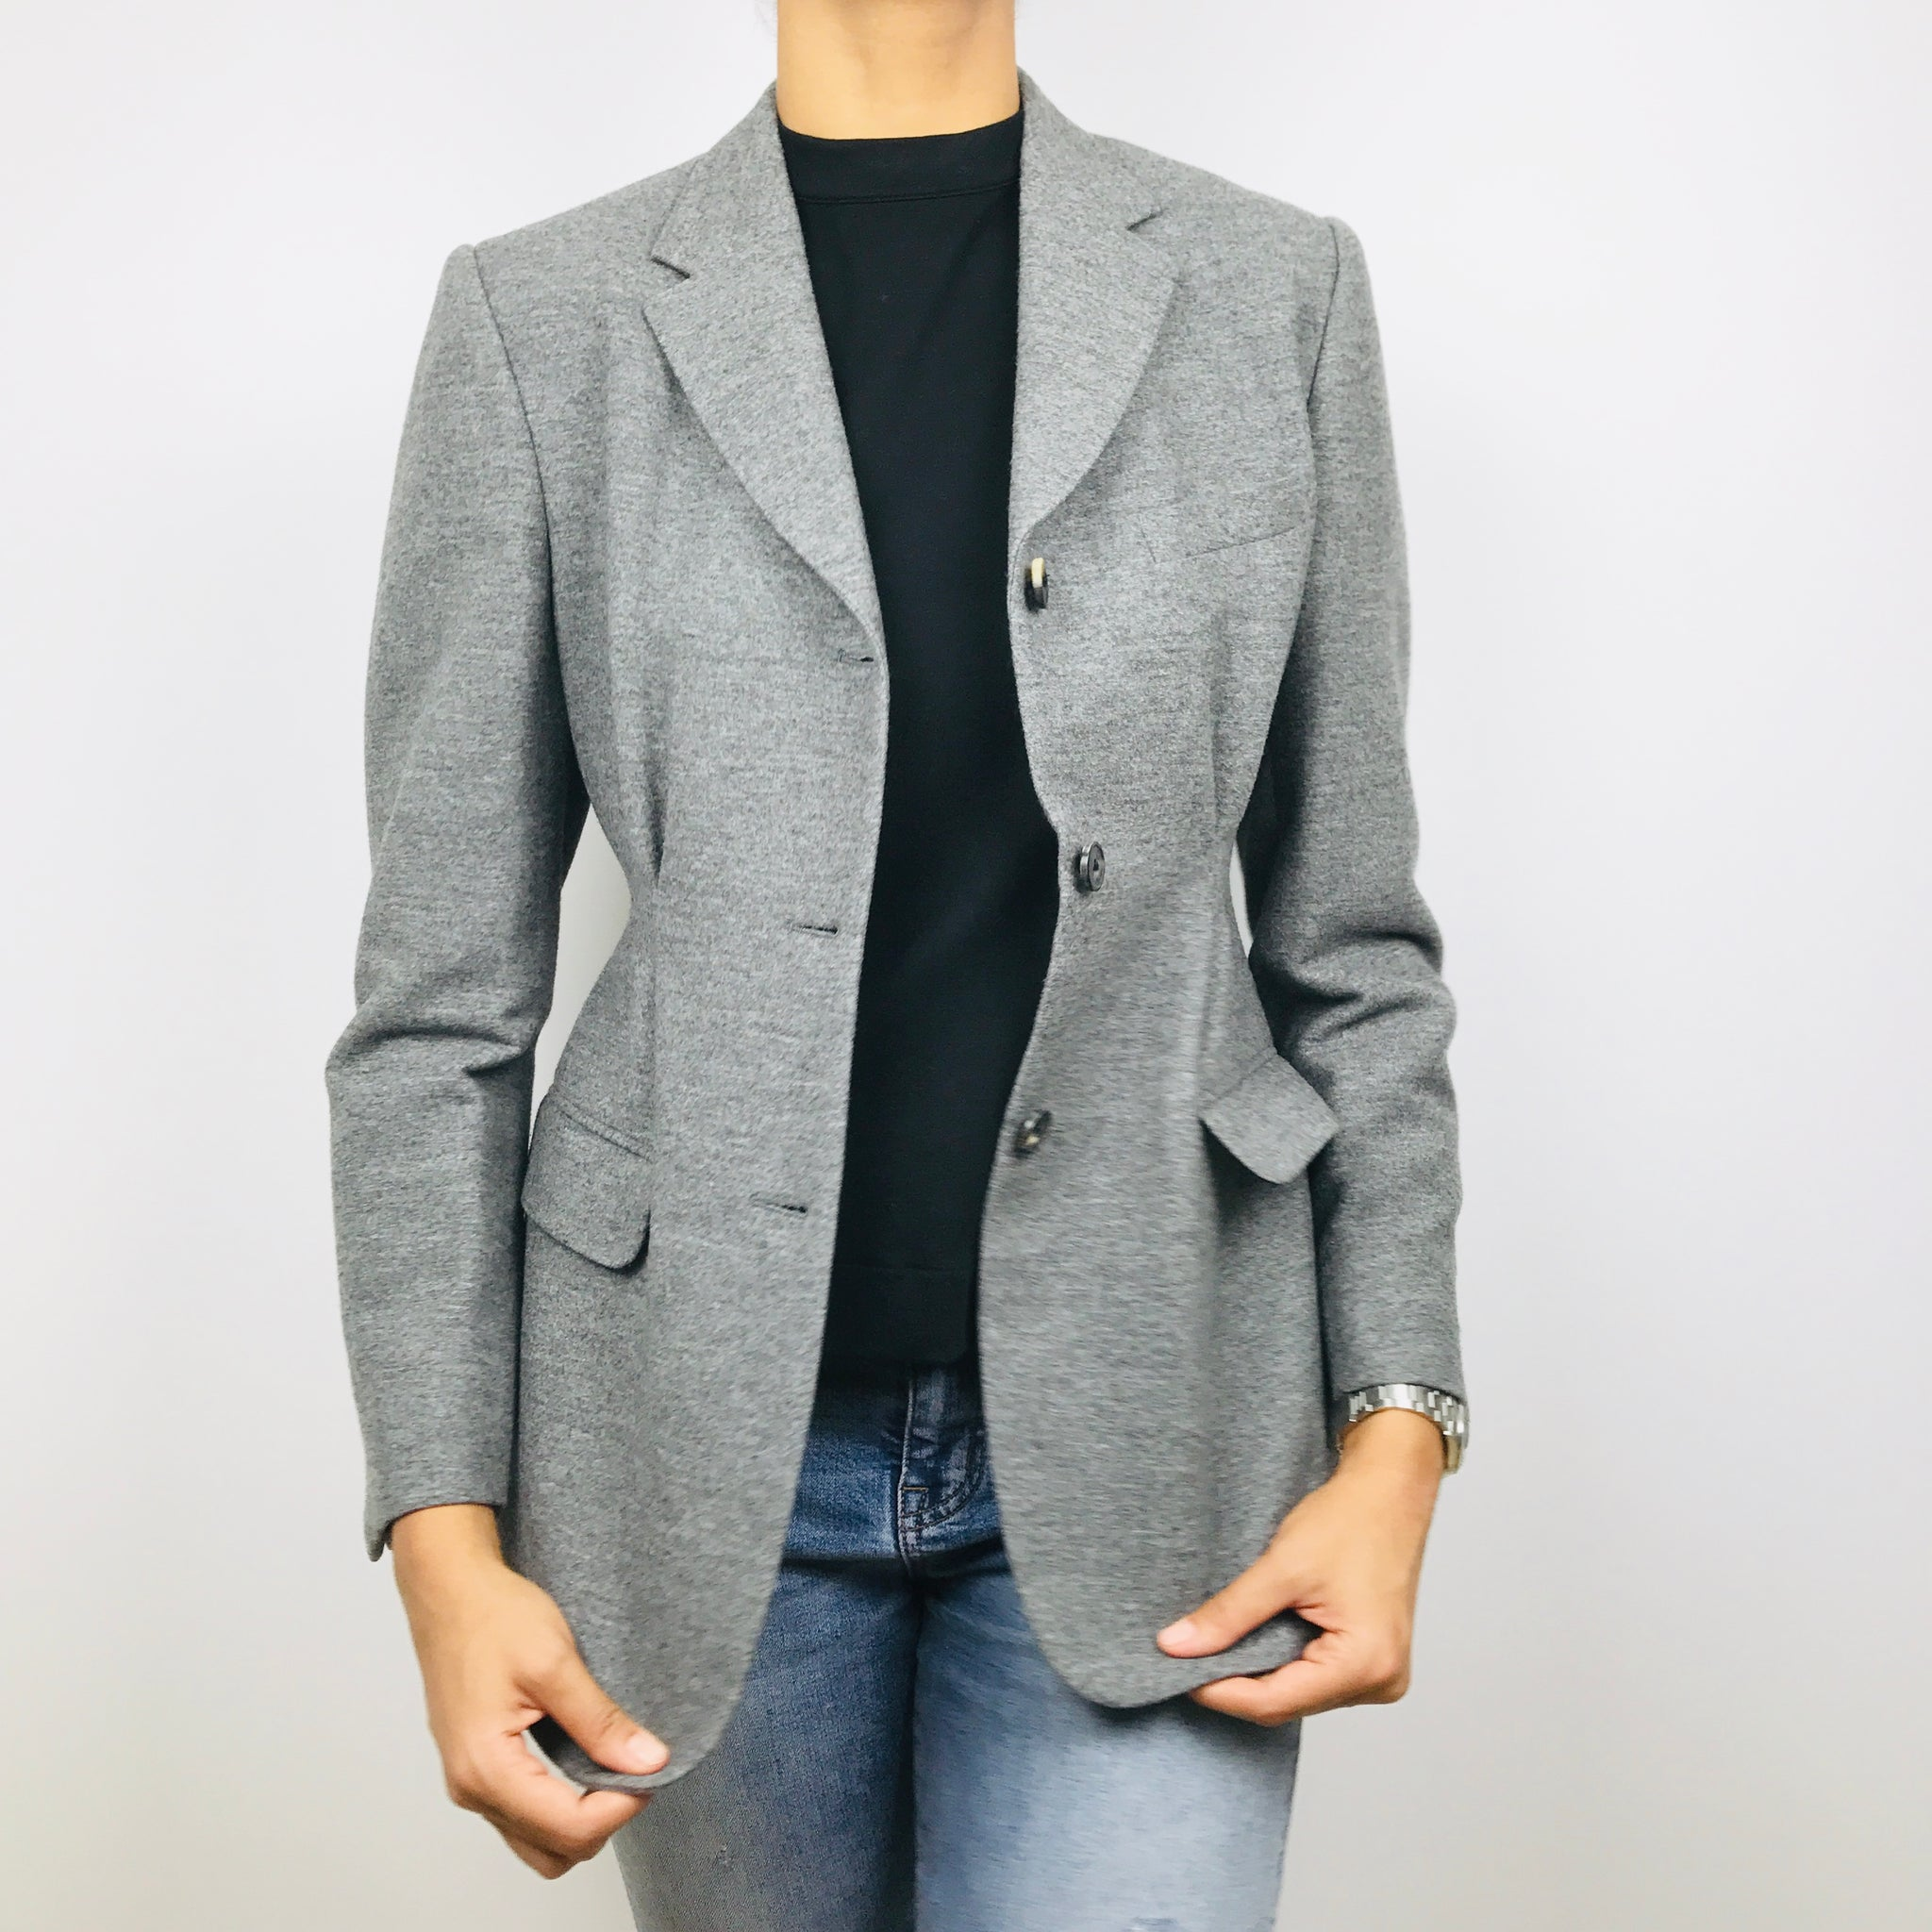 Dries Van Noten Grey Wool Blazer/Jacket | Cinched Waist (6)